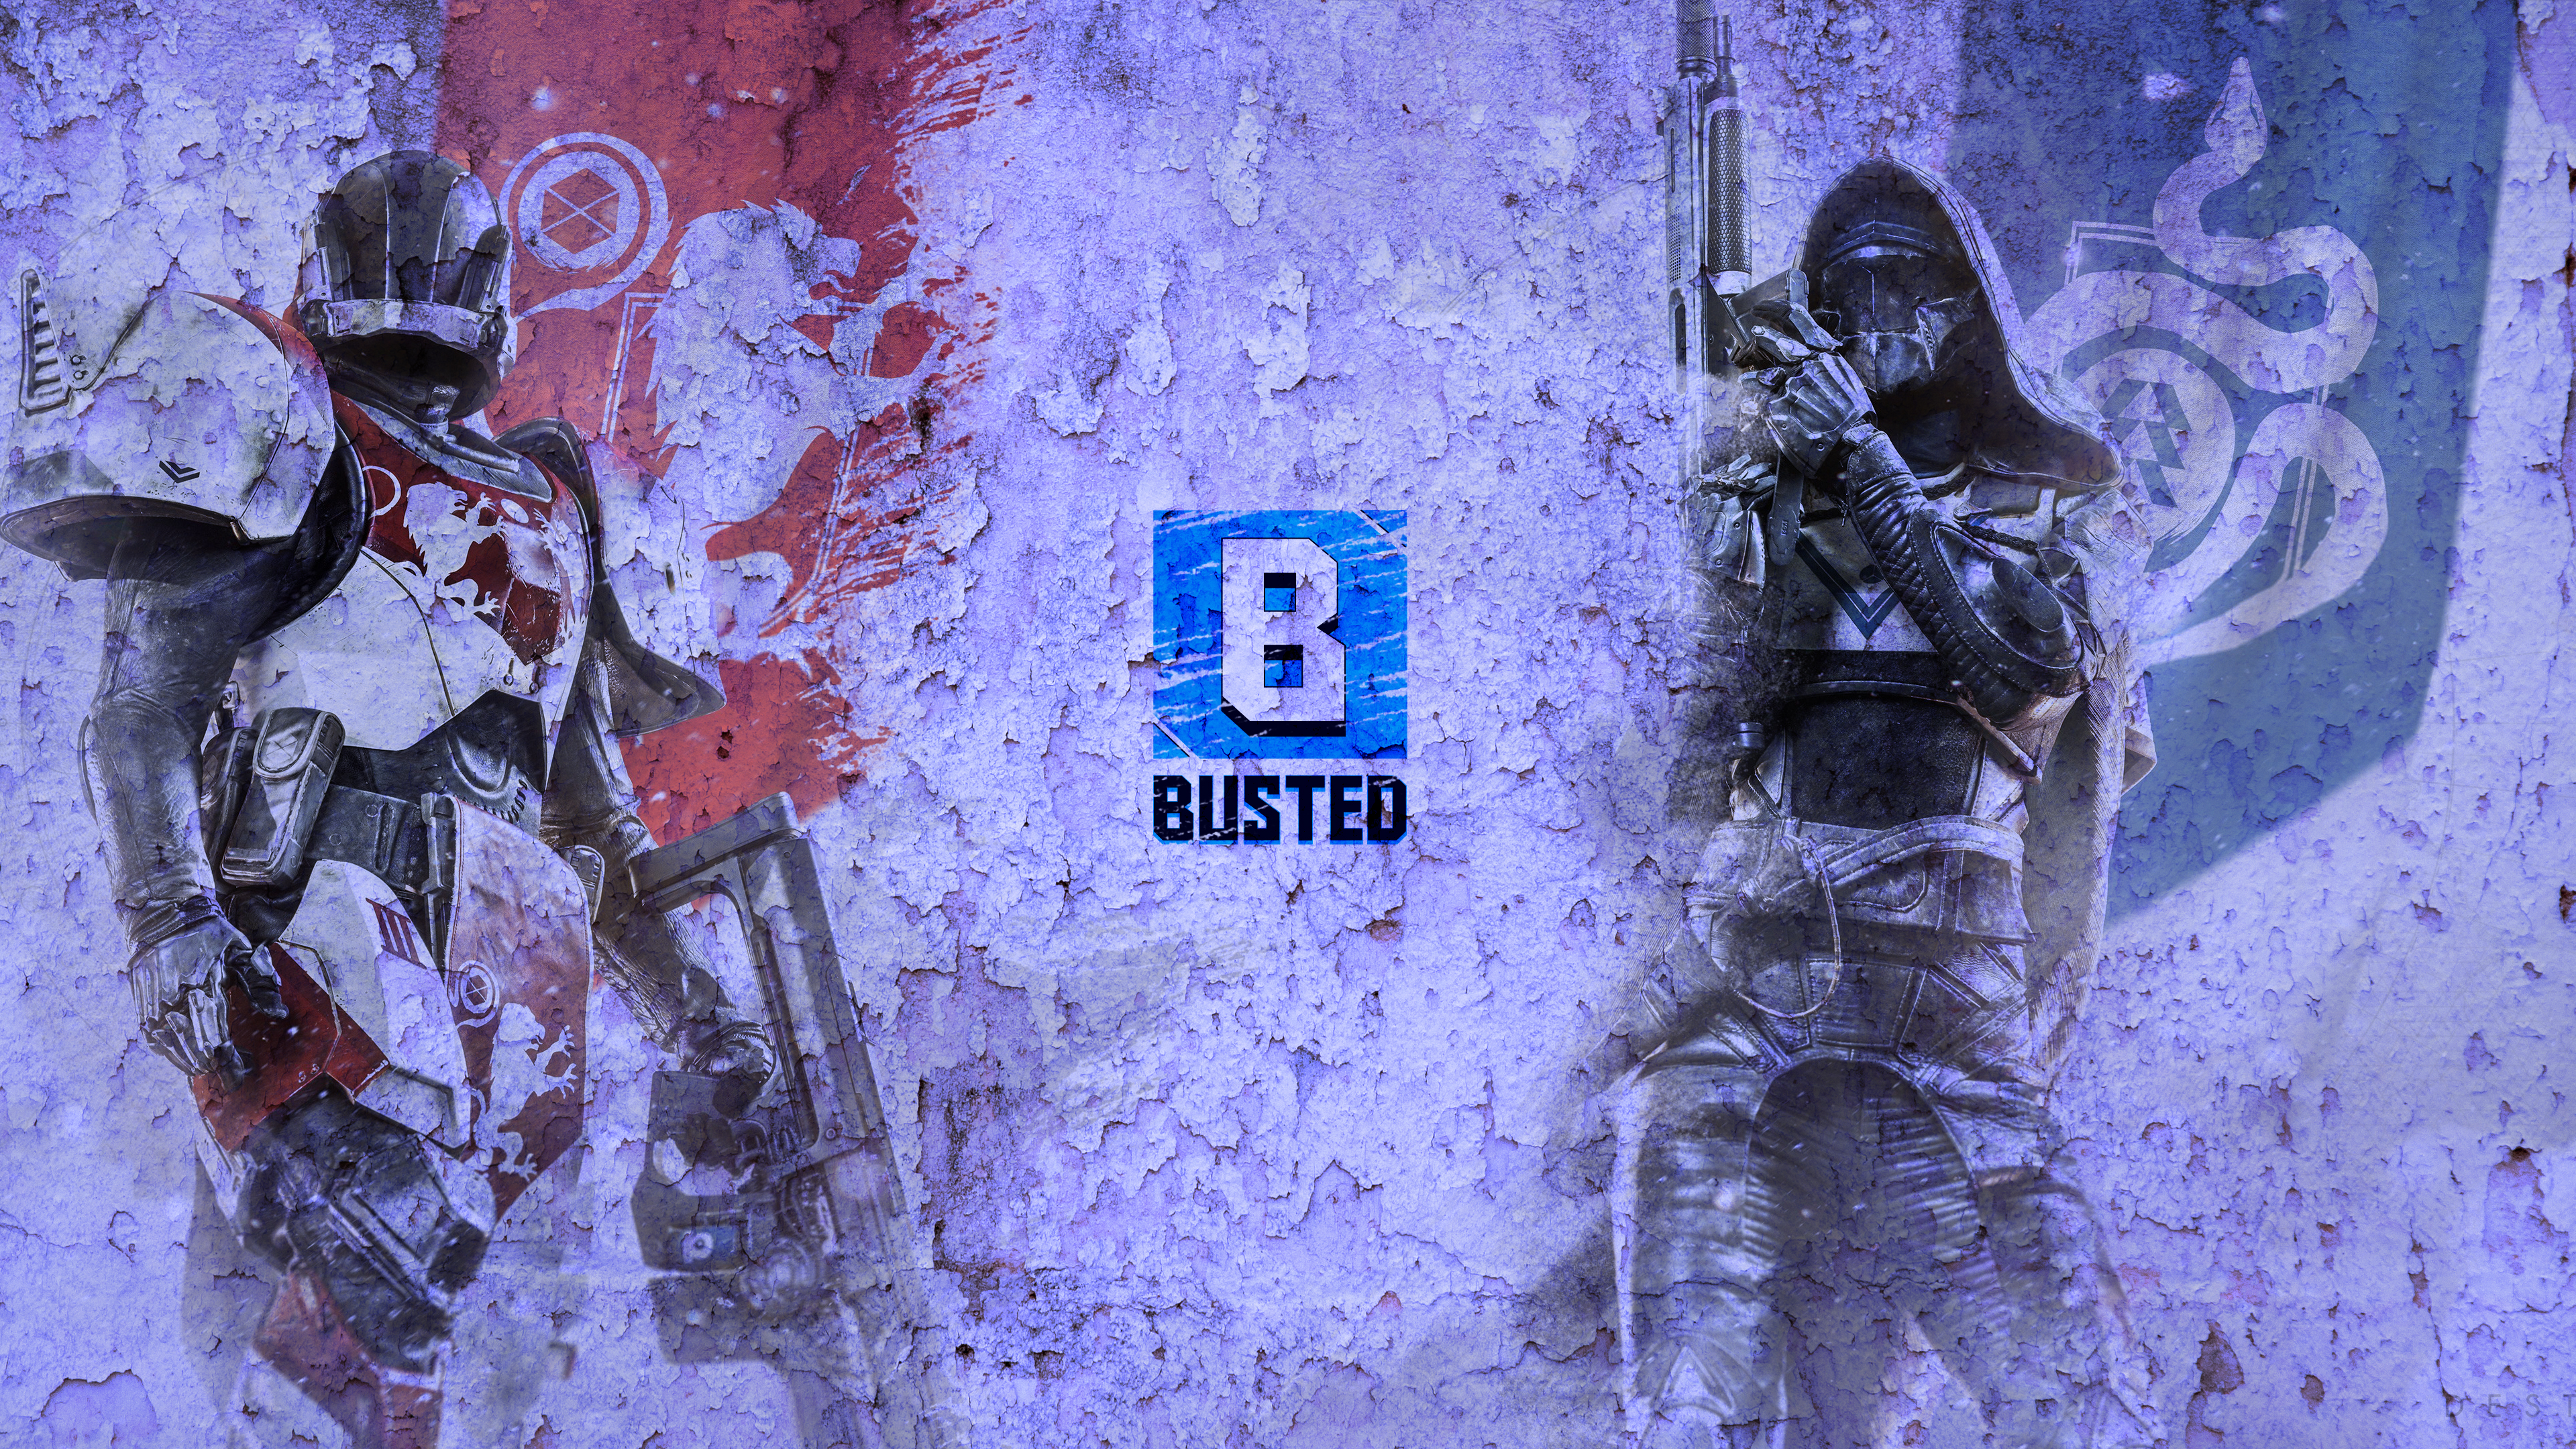 http://busted.gr/wp-content/uploads/2016/11http://busted.gr/wp-content/uploads/2016/11/destiny4k.jpg/destiny4k.jpg